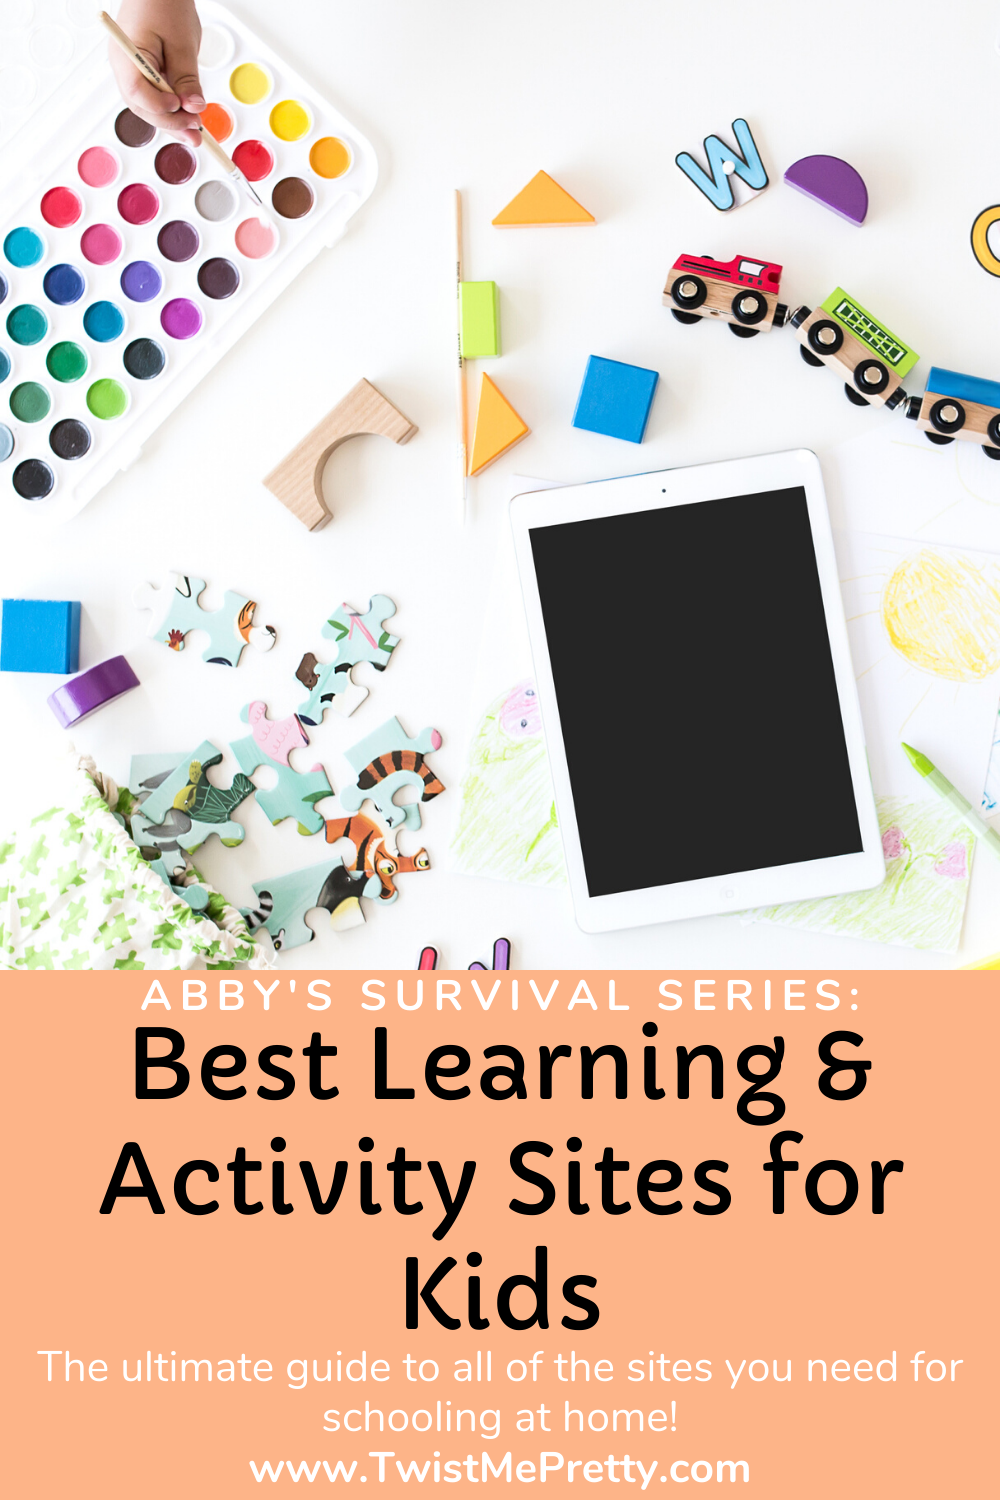 Best Learning & Activity Sites for Kids. The ultimate guide. www.TwistMePretty.com